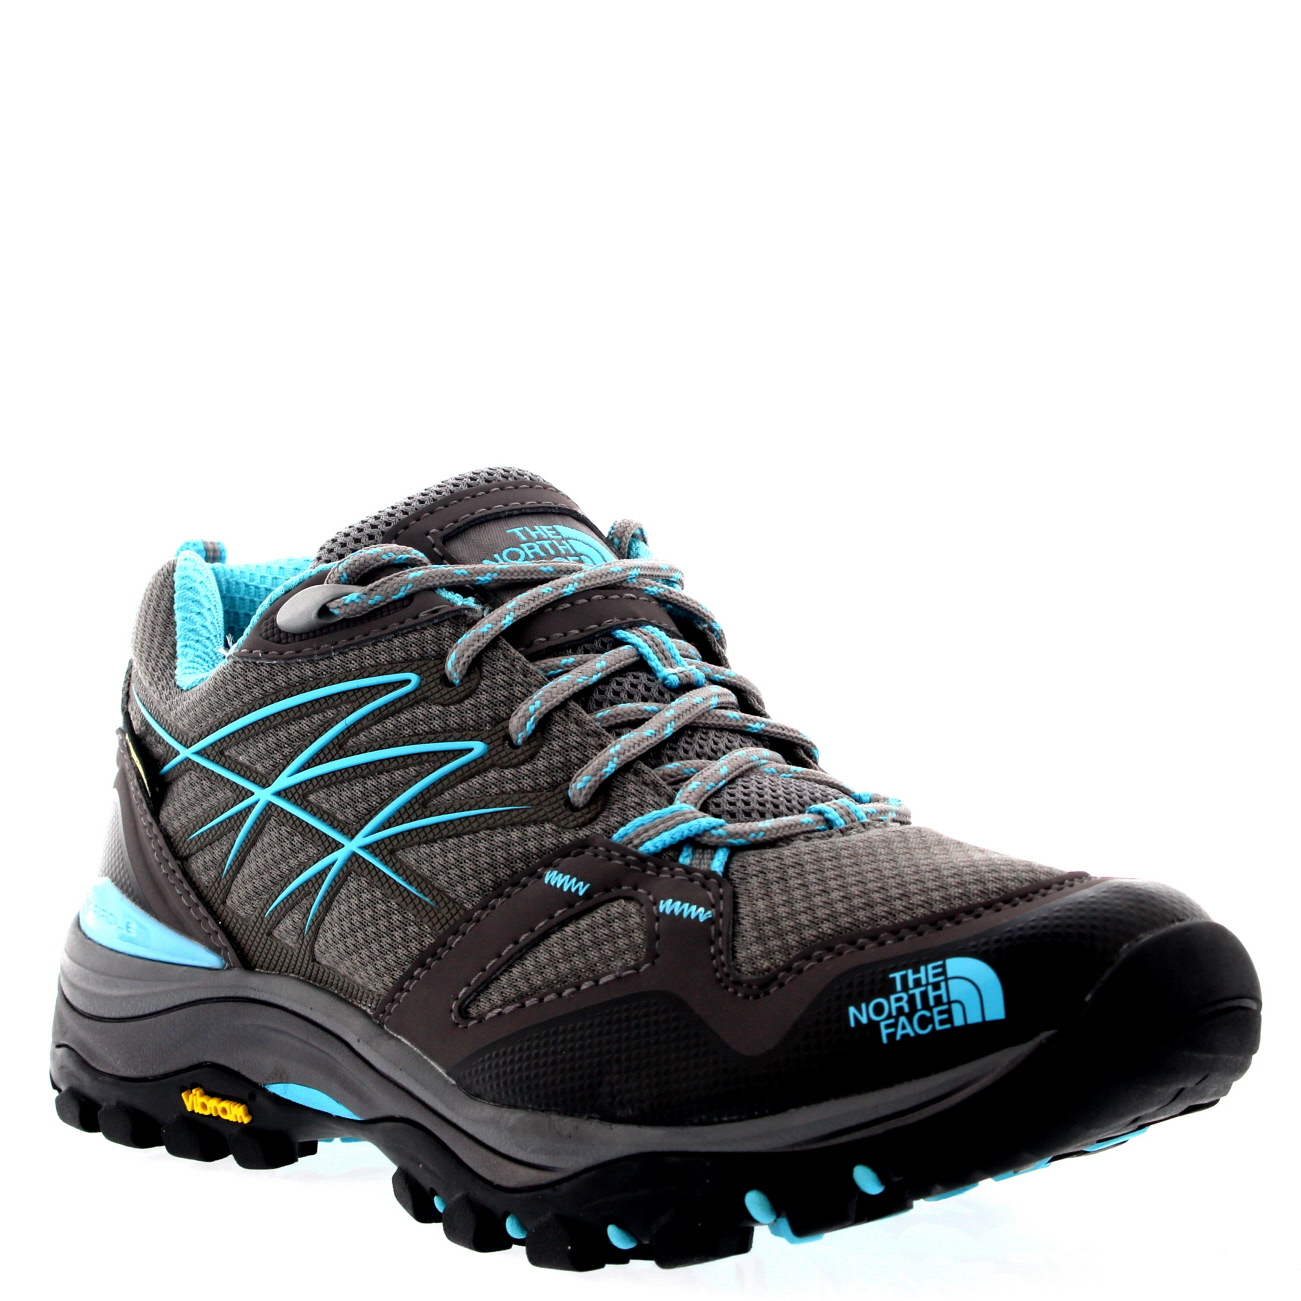 ee7c64ceb50 Womens The North Face Hedgehog Fastpack Gore-Tex Hiking Trainers EU ...